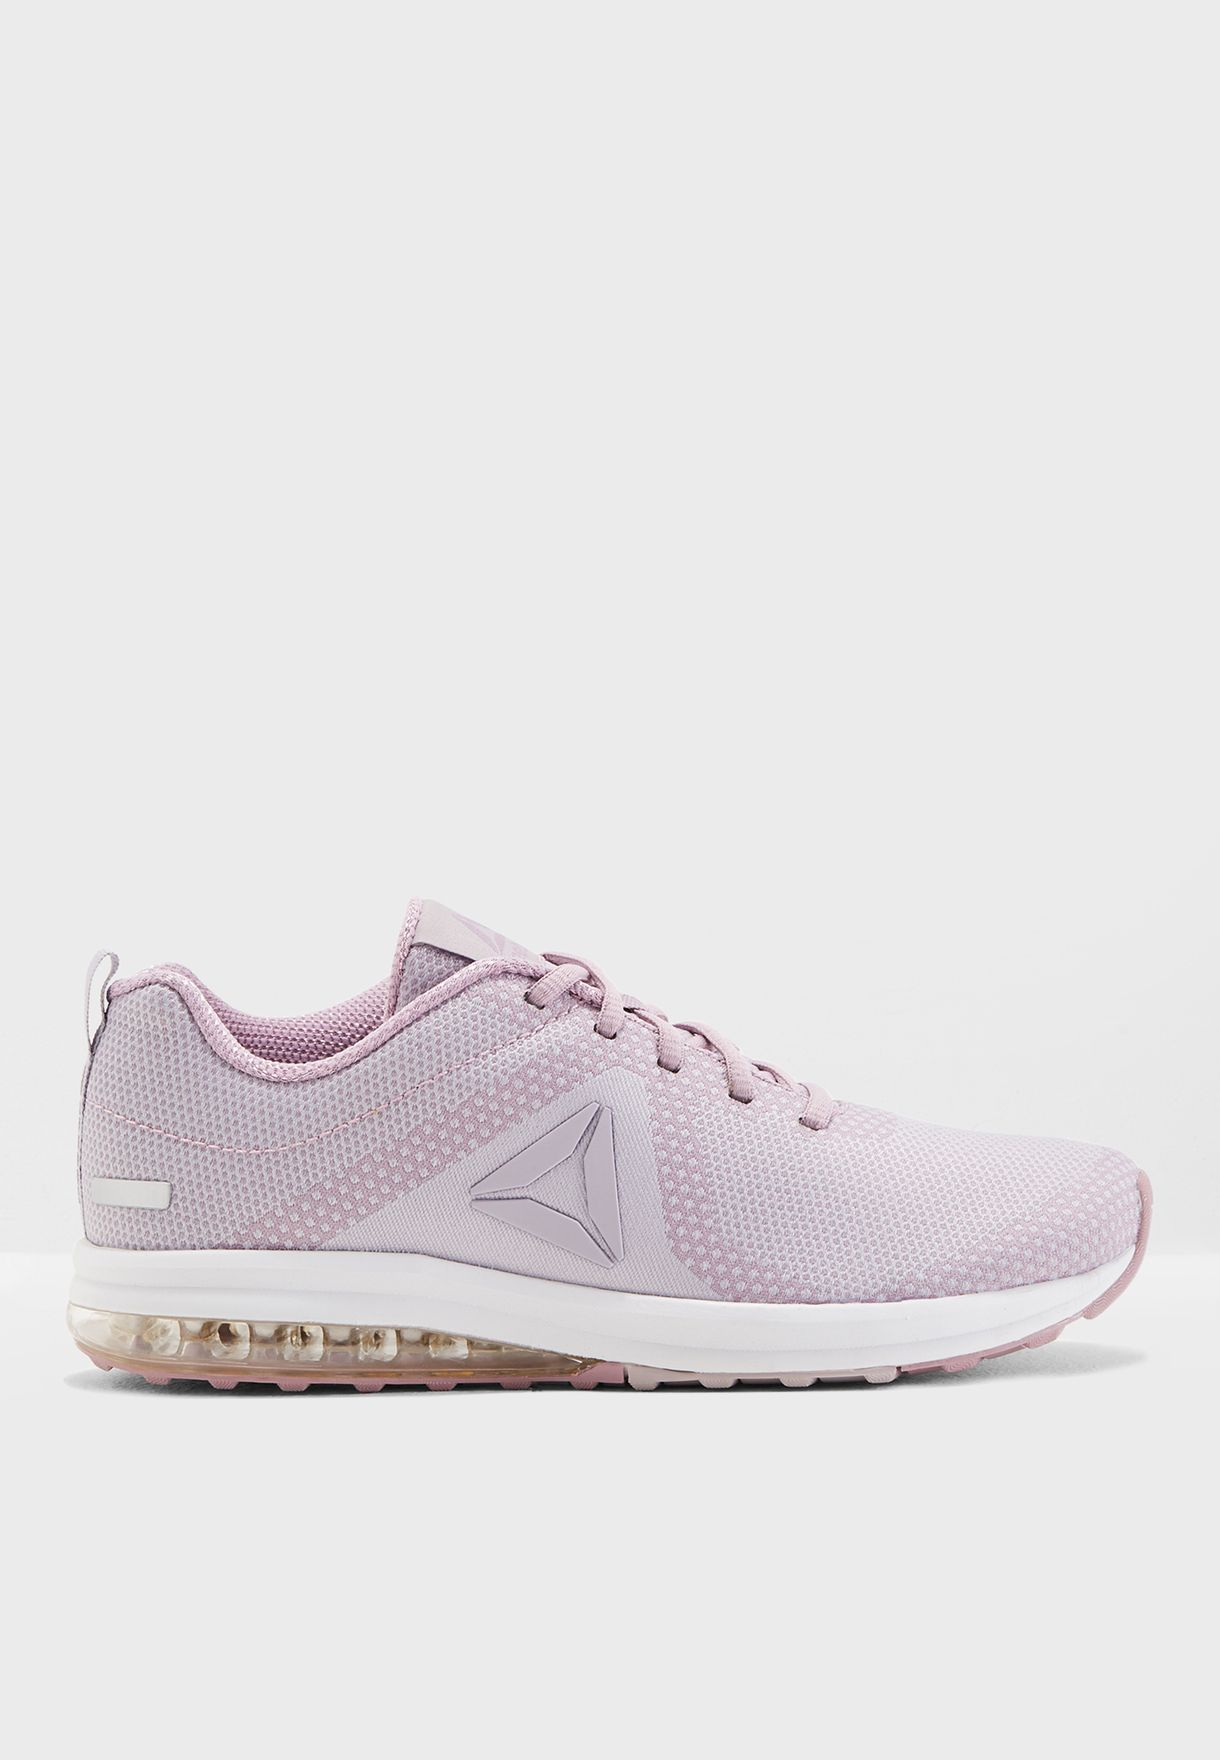 Shop Reebok purple Jet Dashride 6.0 CN5453 for Women in UAE ... ce6ec0c2a